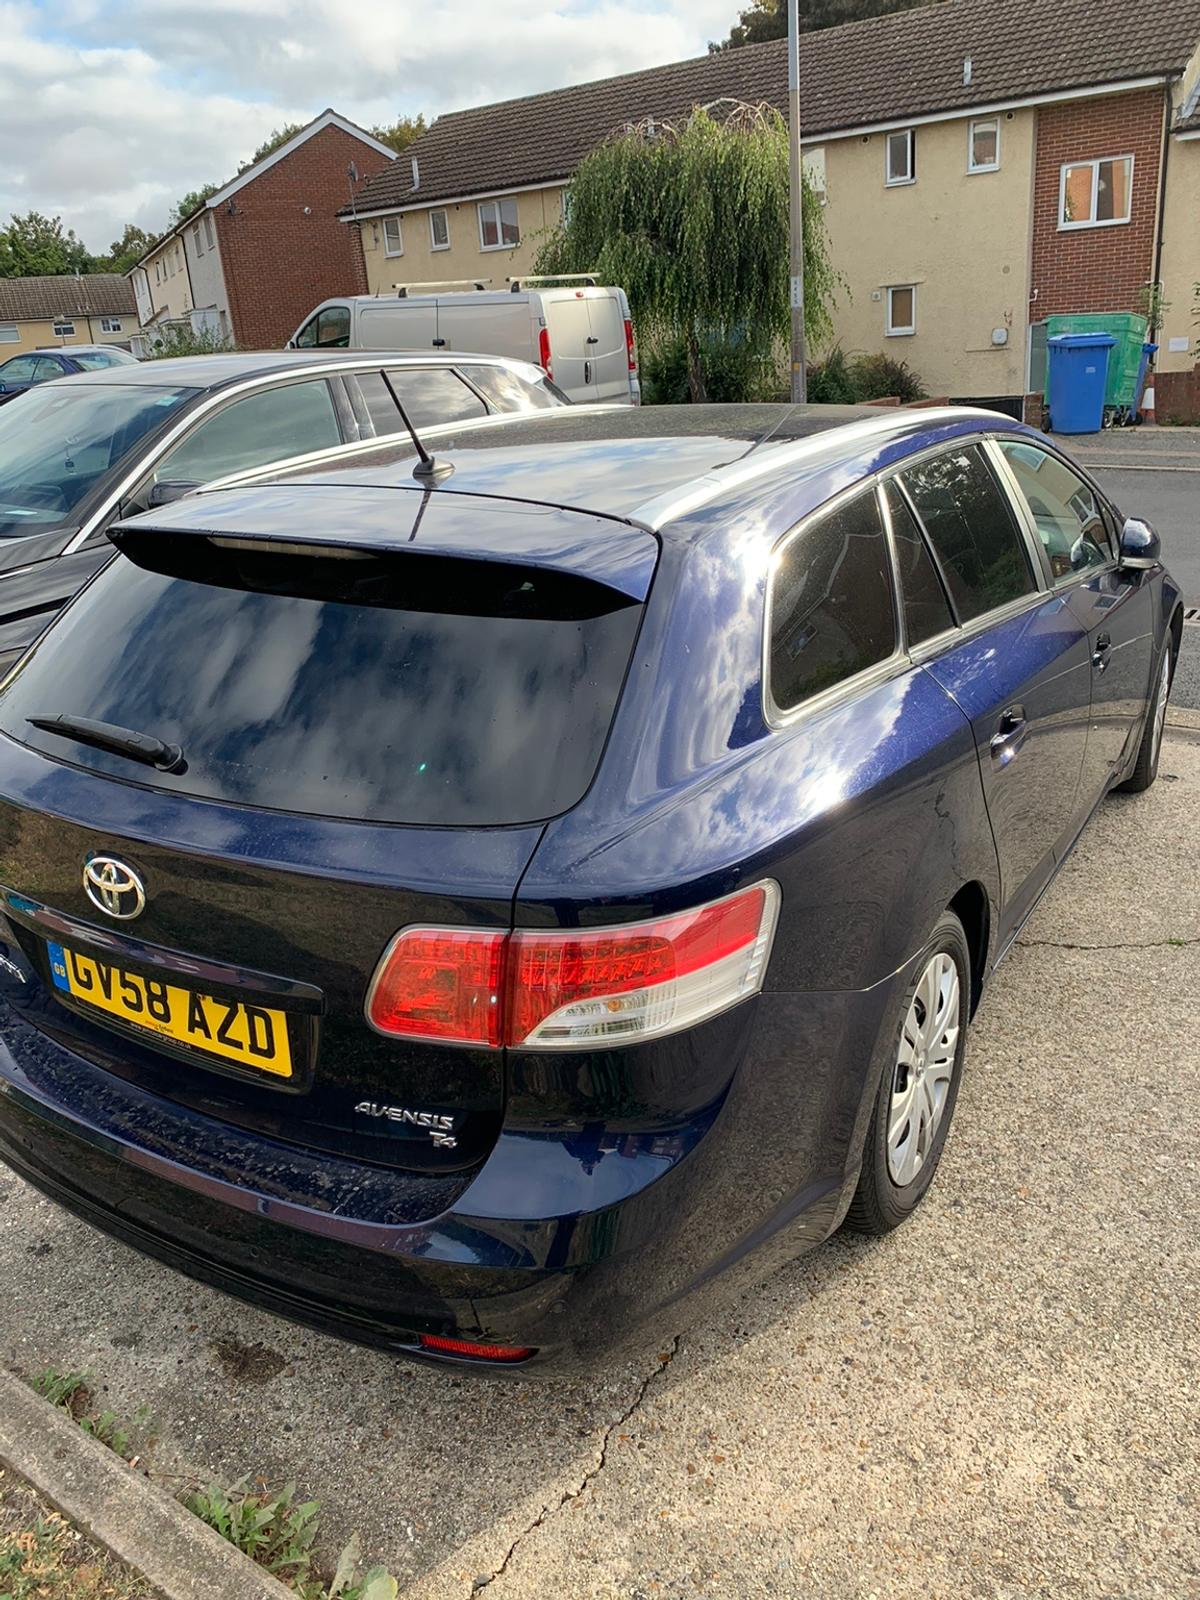 Full as desceiption bought from Toyota Romford still perfect condition for age... FSH, New alternator, battery, water pump, brakes and tires. Car serviced and maintained regularly. It runs perfectly. Call 07724558595